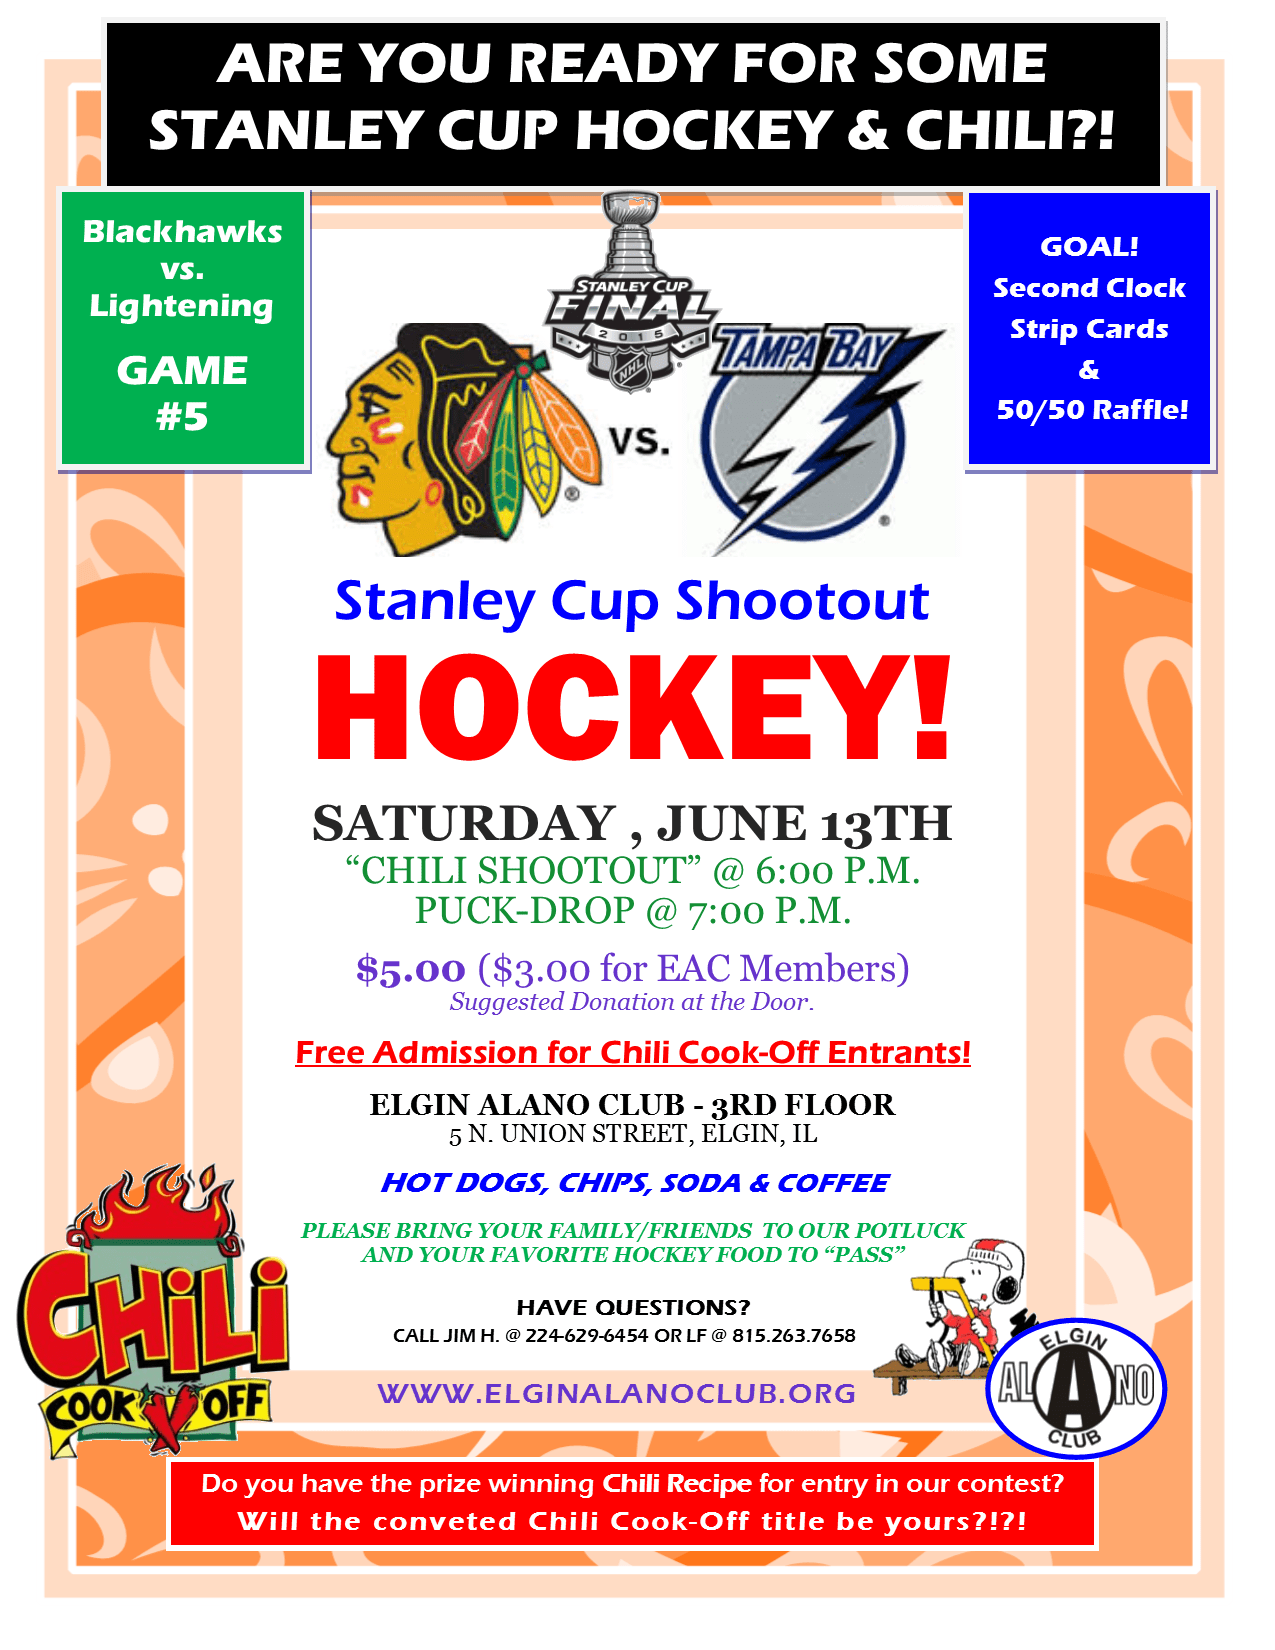 Saturday Night Shootout - Stanley Cup HOCKEY and Chili Cook-Off! 1